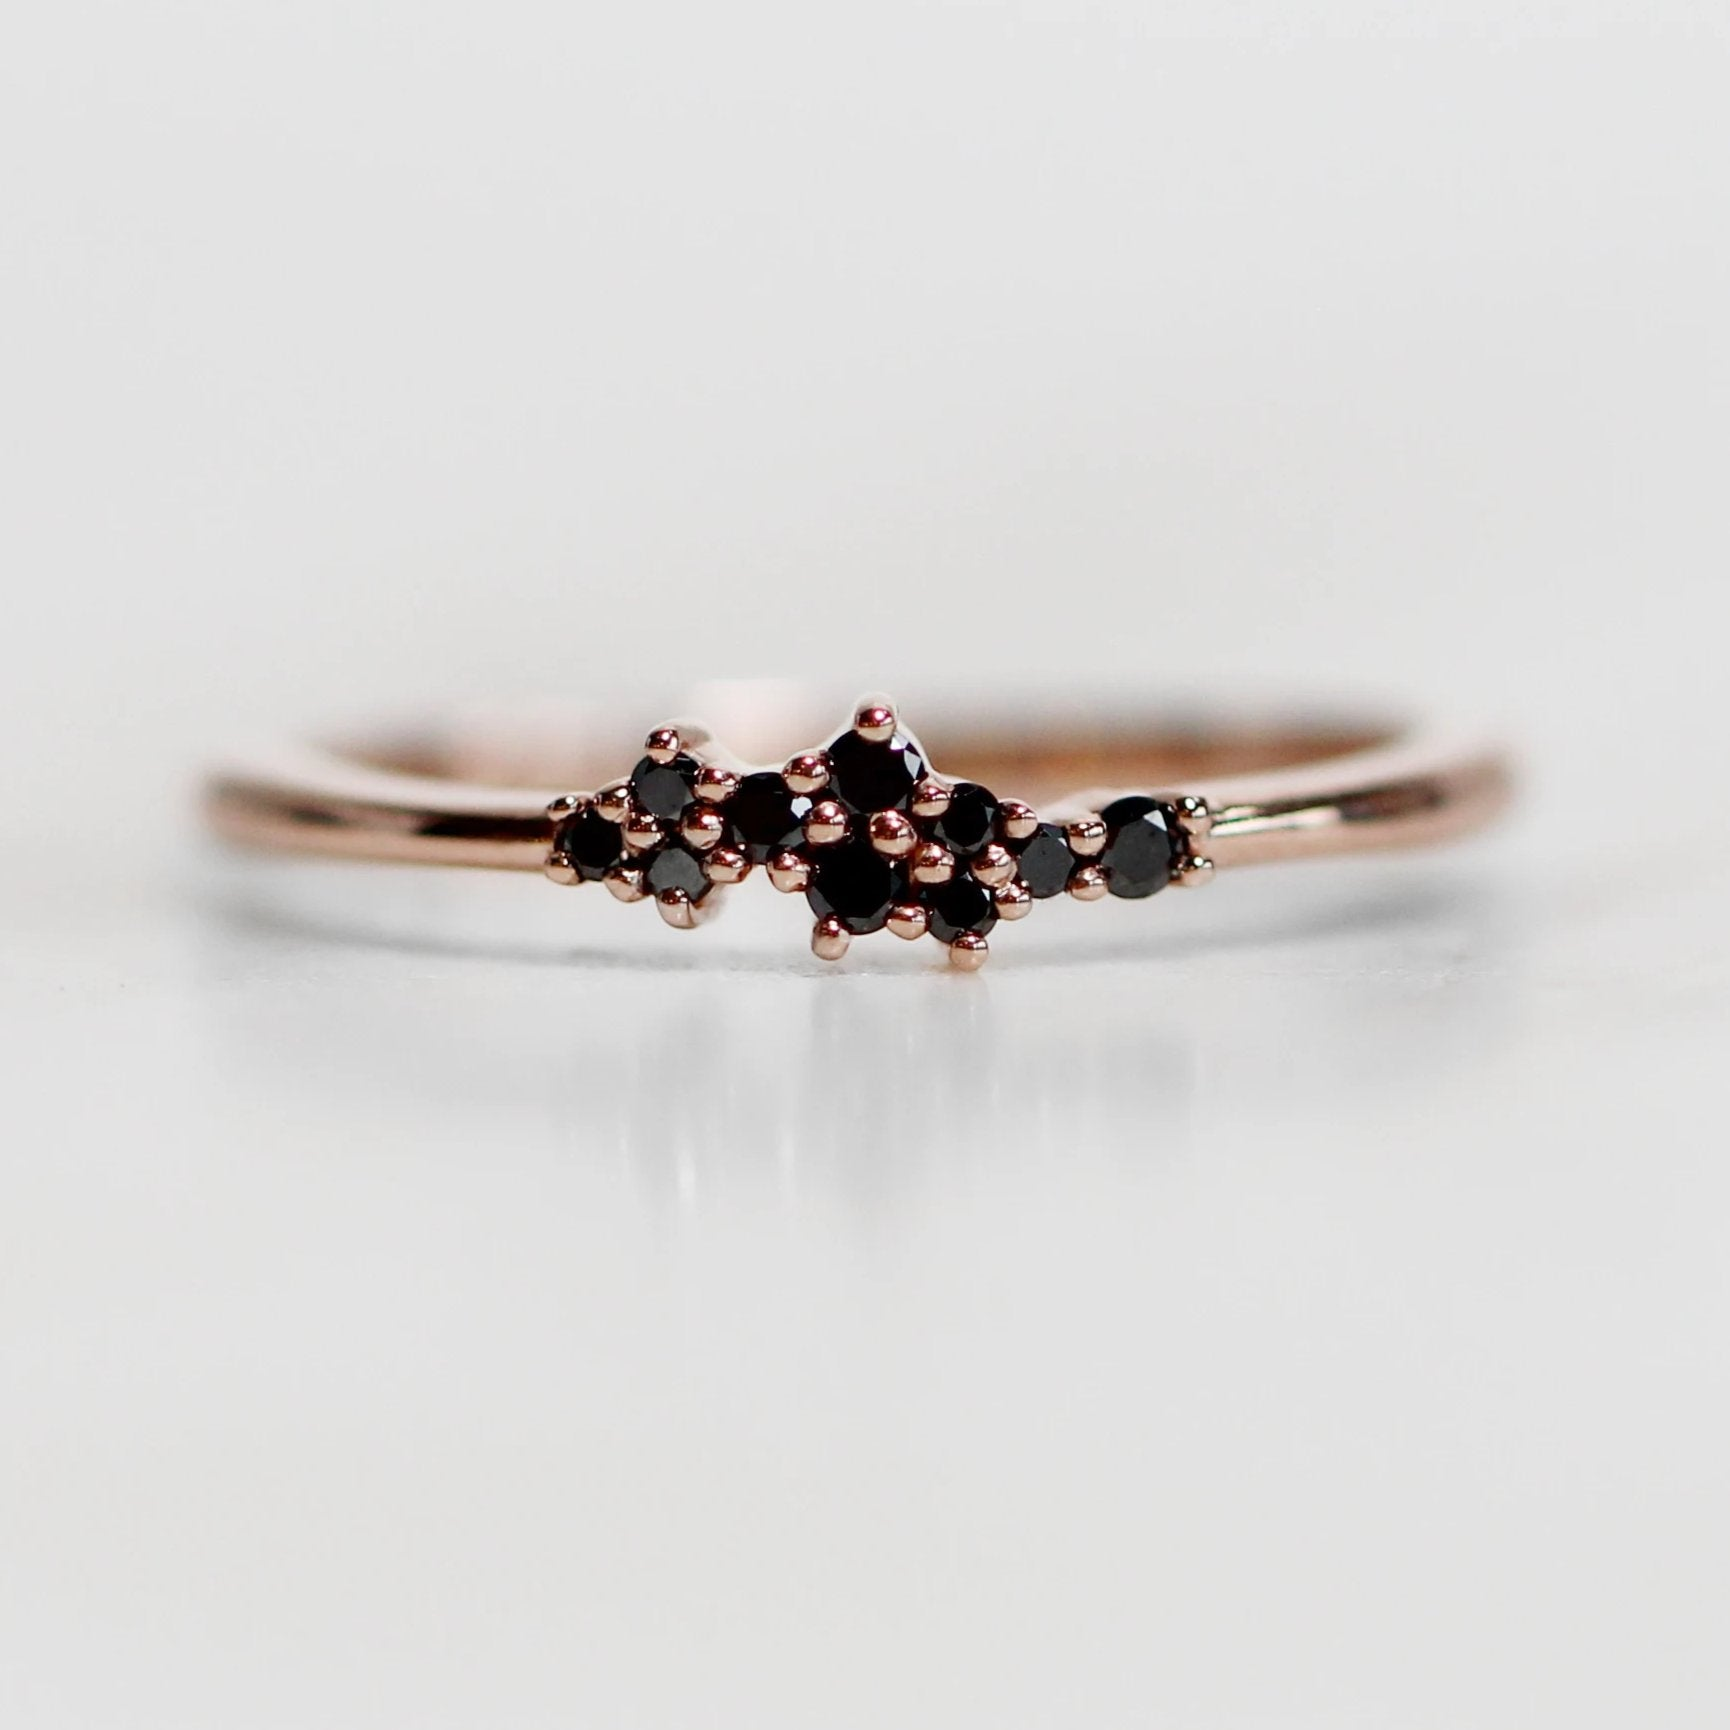 Fiona - Cluster style black diamond band - Salt & Pepper Celestial Diamond Engagement Rings and Wedding Bands  by Midwinter Co.